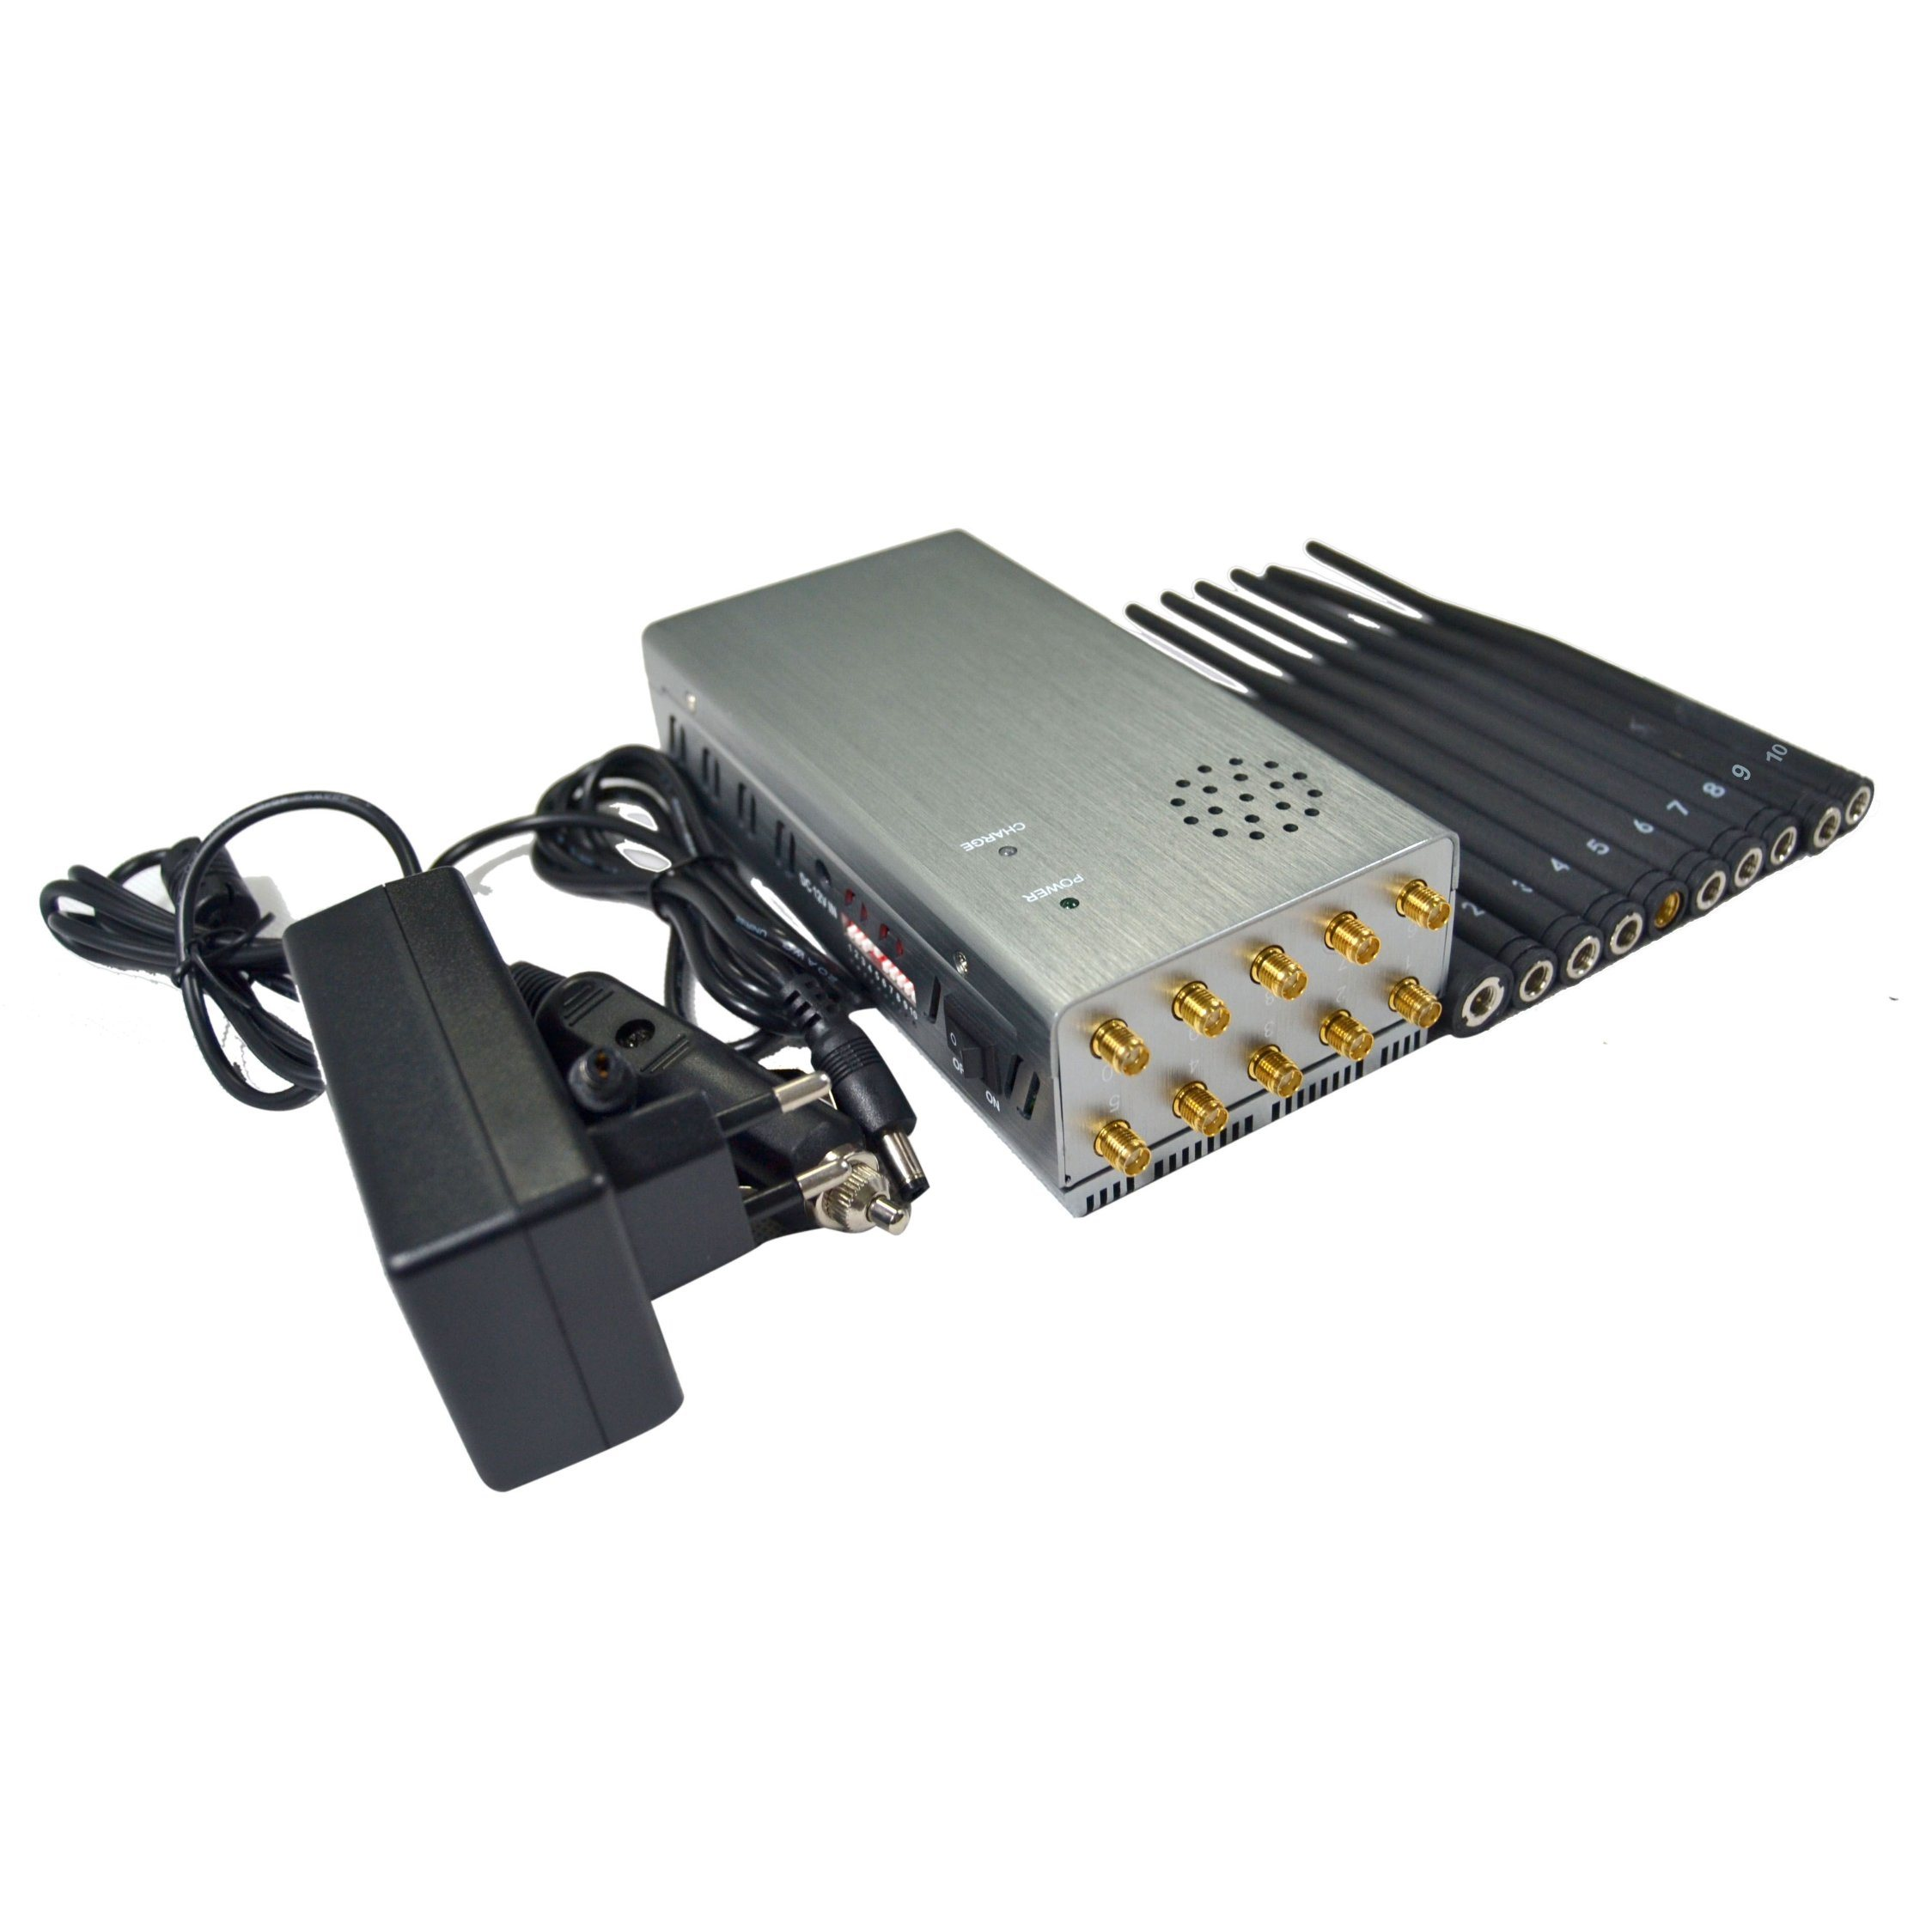 signal blocker gsm to lbs/ft2 - China The King of Portable Jammers with 8000mA and 10 Antennas Including 2g 3G 4G 5g GPS 433MHz315MHz868MHz WiFi - China 8000mA Battery Jammer, Large Volume Power Signal Blocker